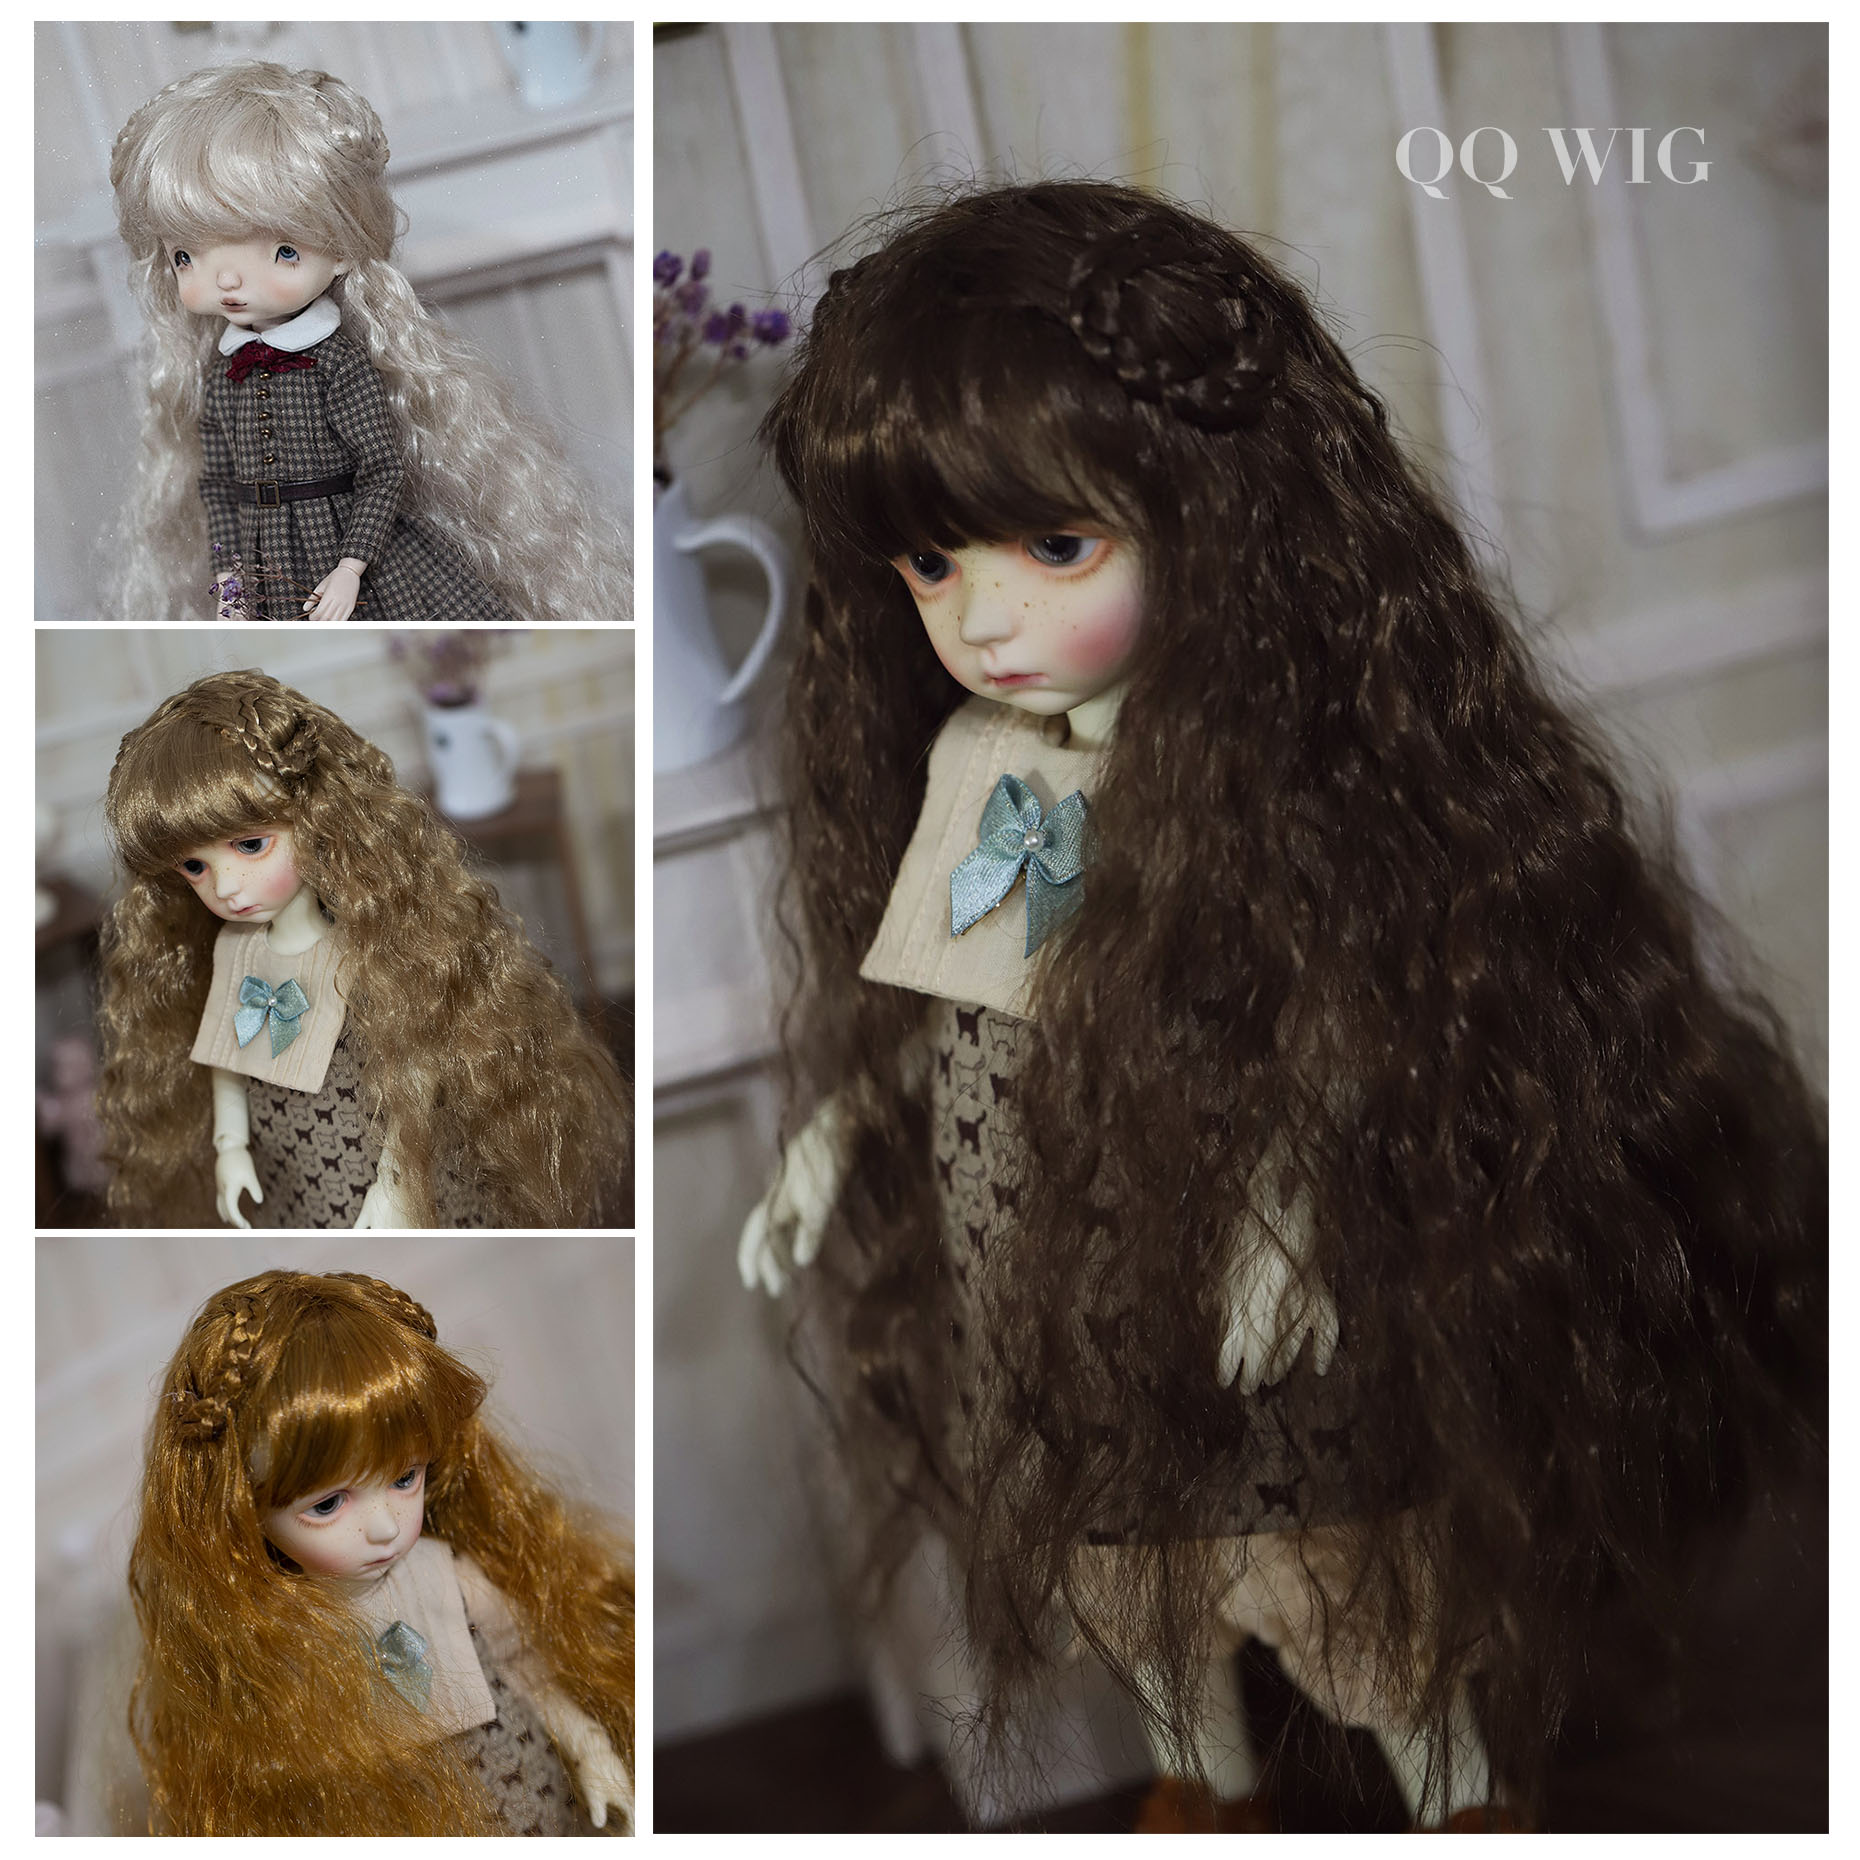 QQ-94 Synthetic Mohair Wig